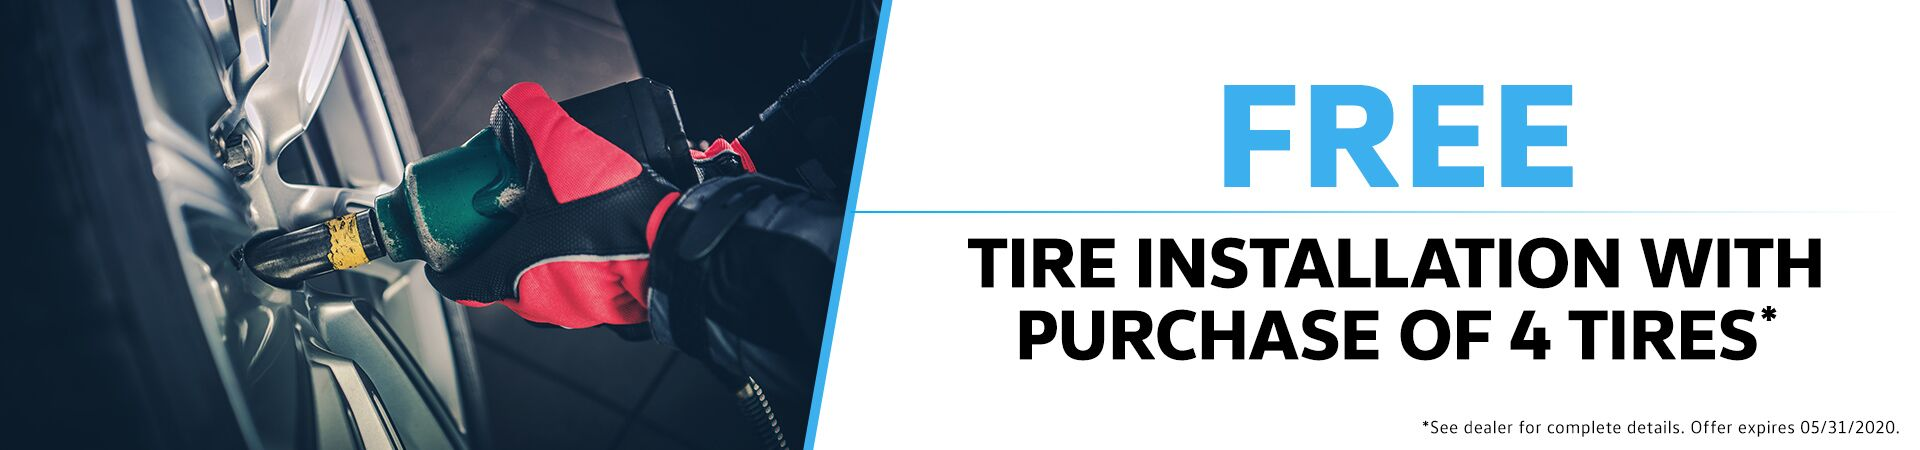 May - Free Tire Installation